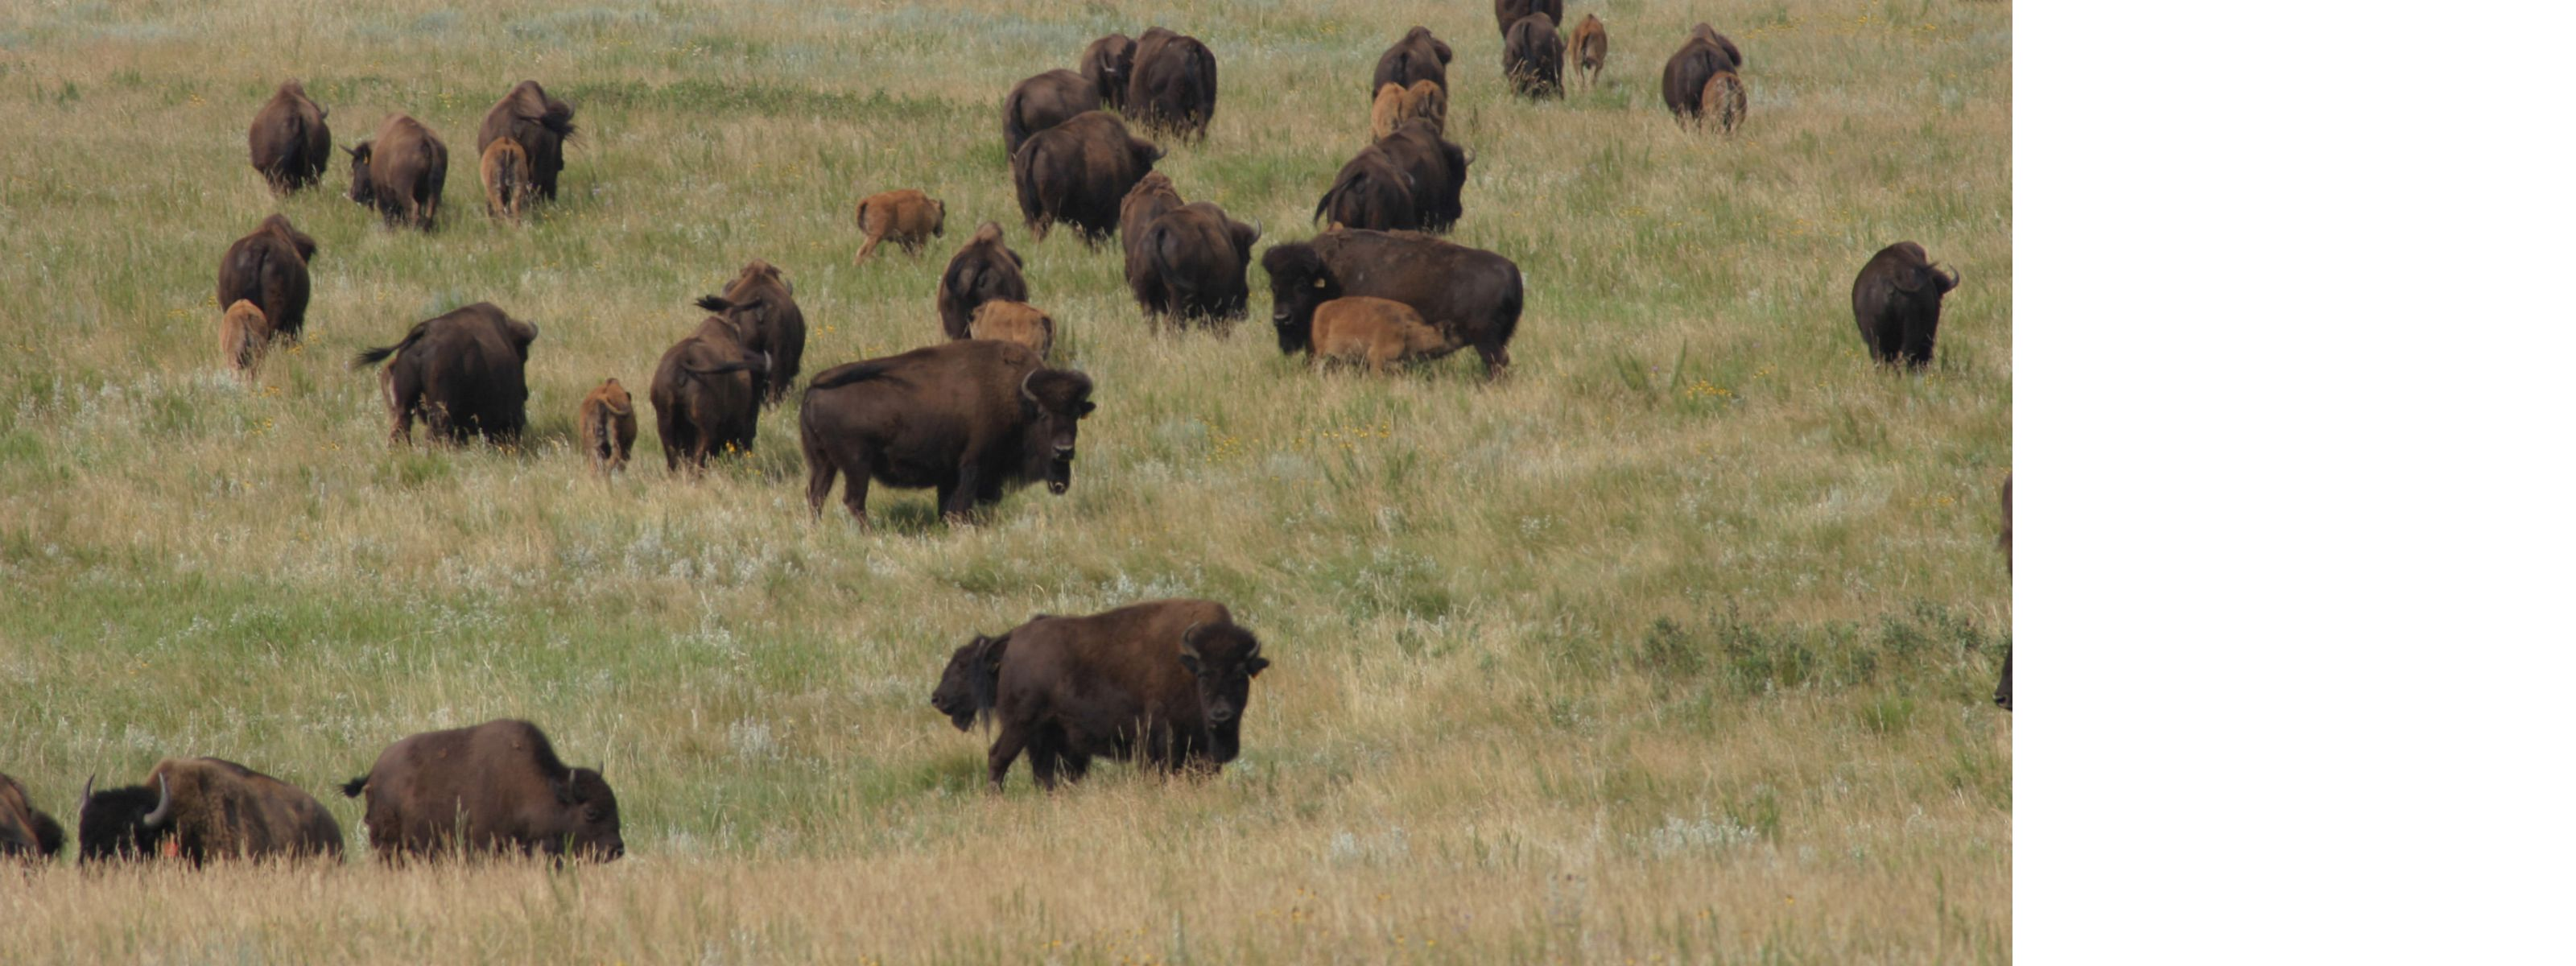 Bison herd, with calves, at Cross Ranch Preserve, near Washburn, North Dakota.